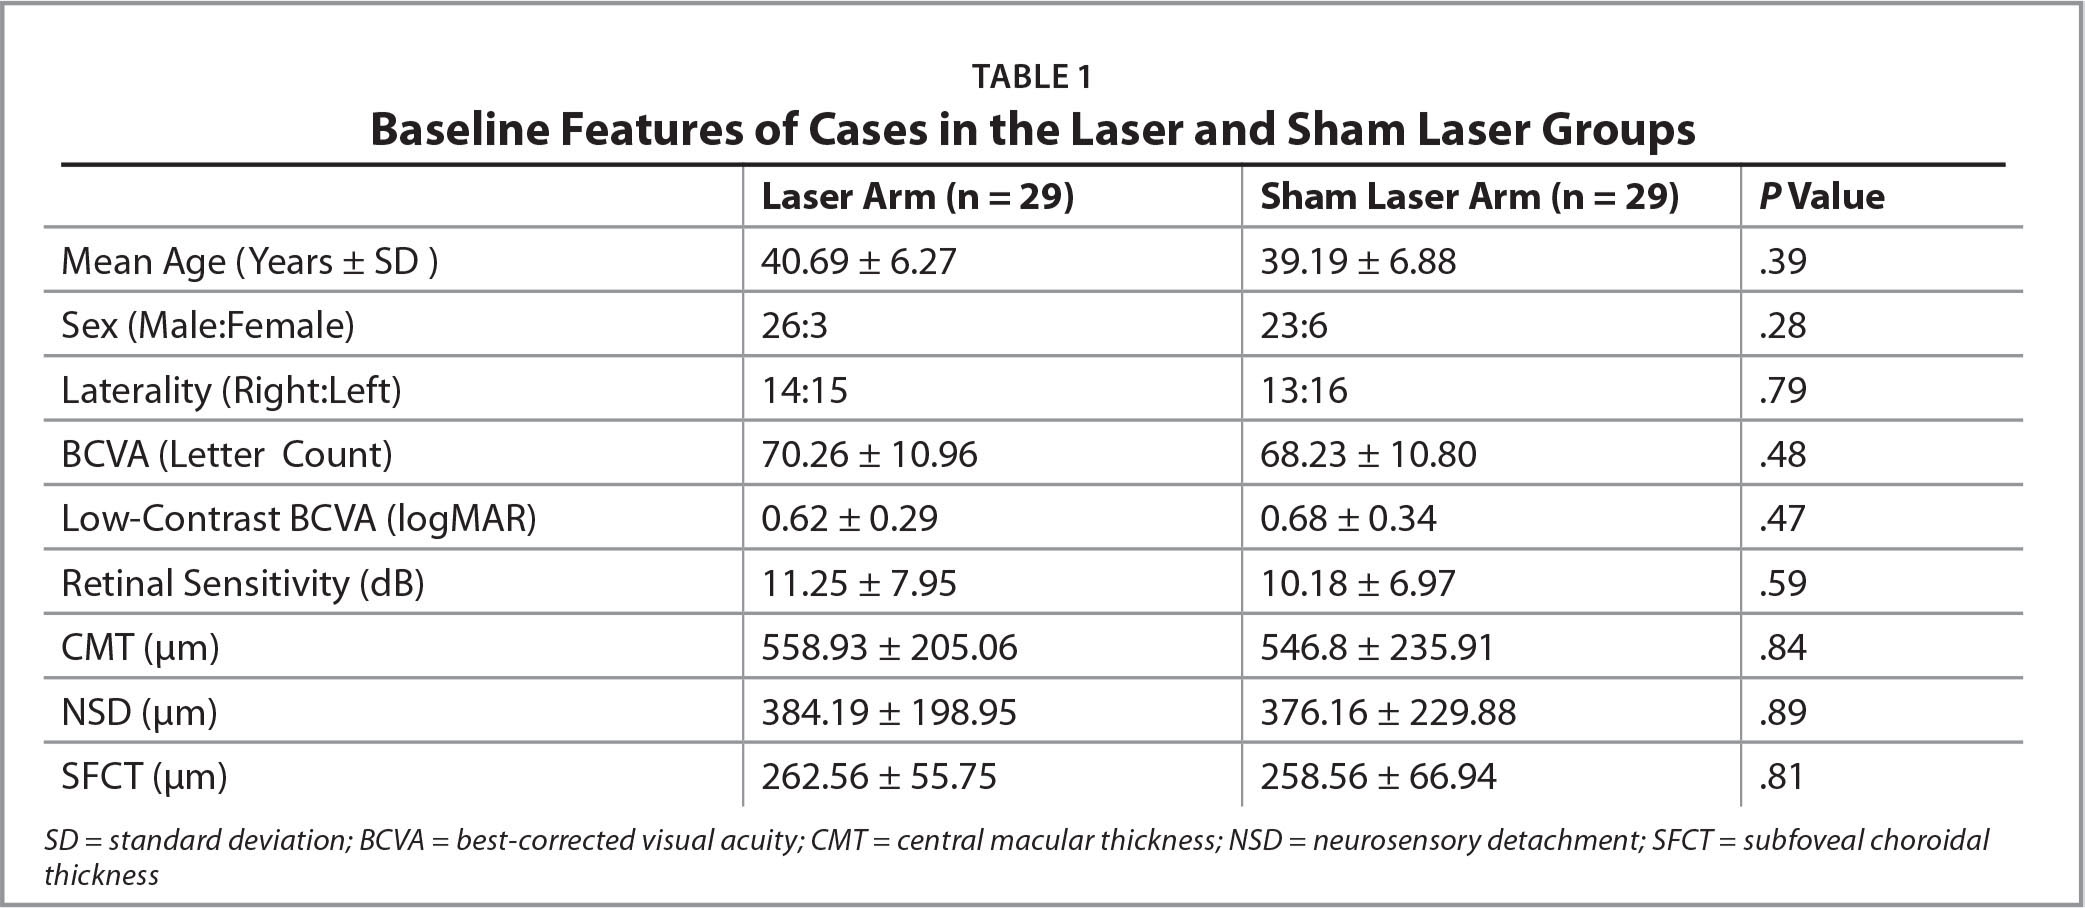 Baseline Features of Cases in the Laser and Sham Laser Groups